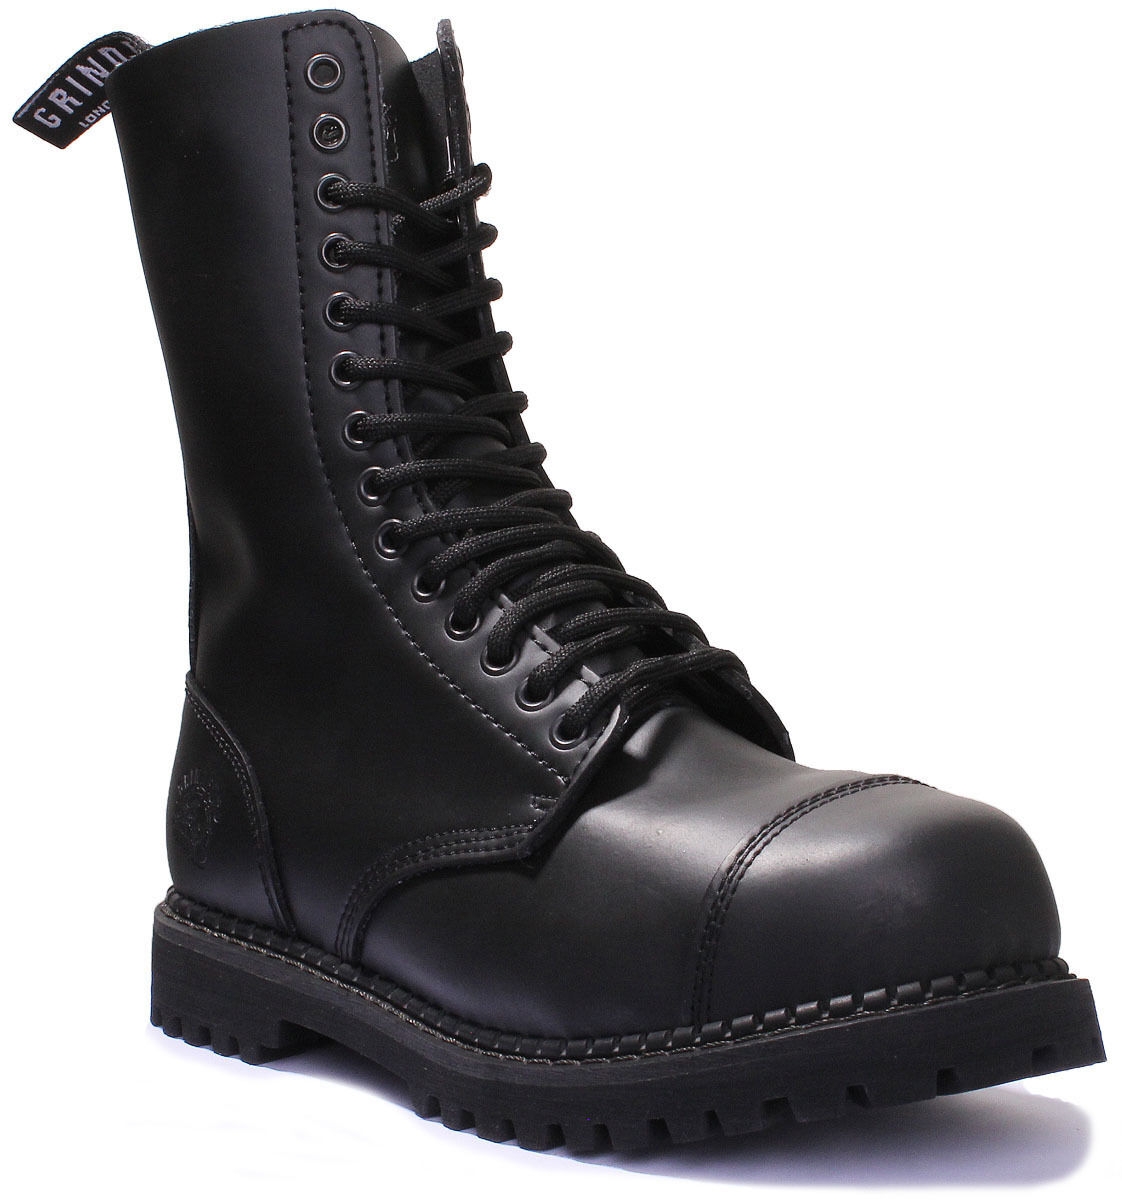 Grinders Herald CS Unisex Black Leather Matt Boots UK Size 3 - 12